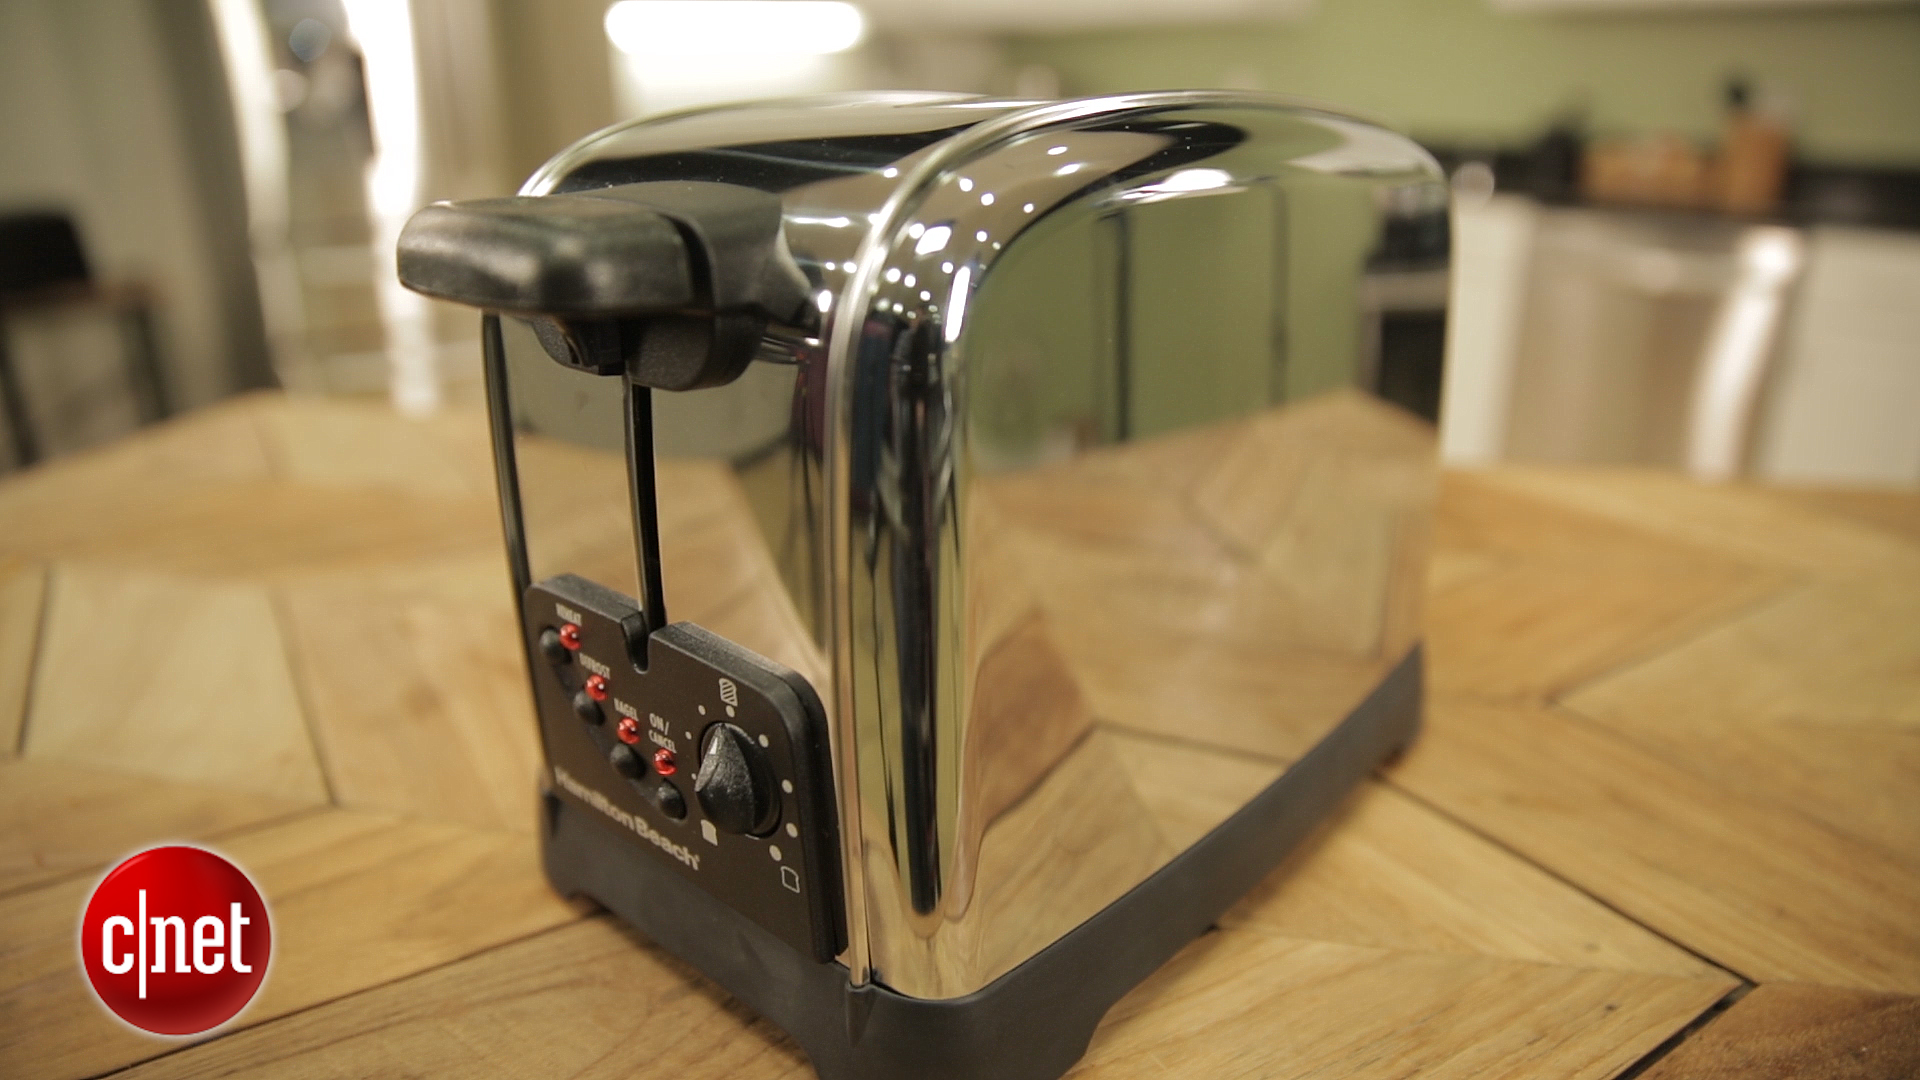 Video: Toasters don't get more average than this